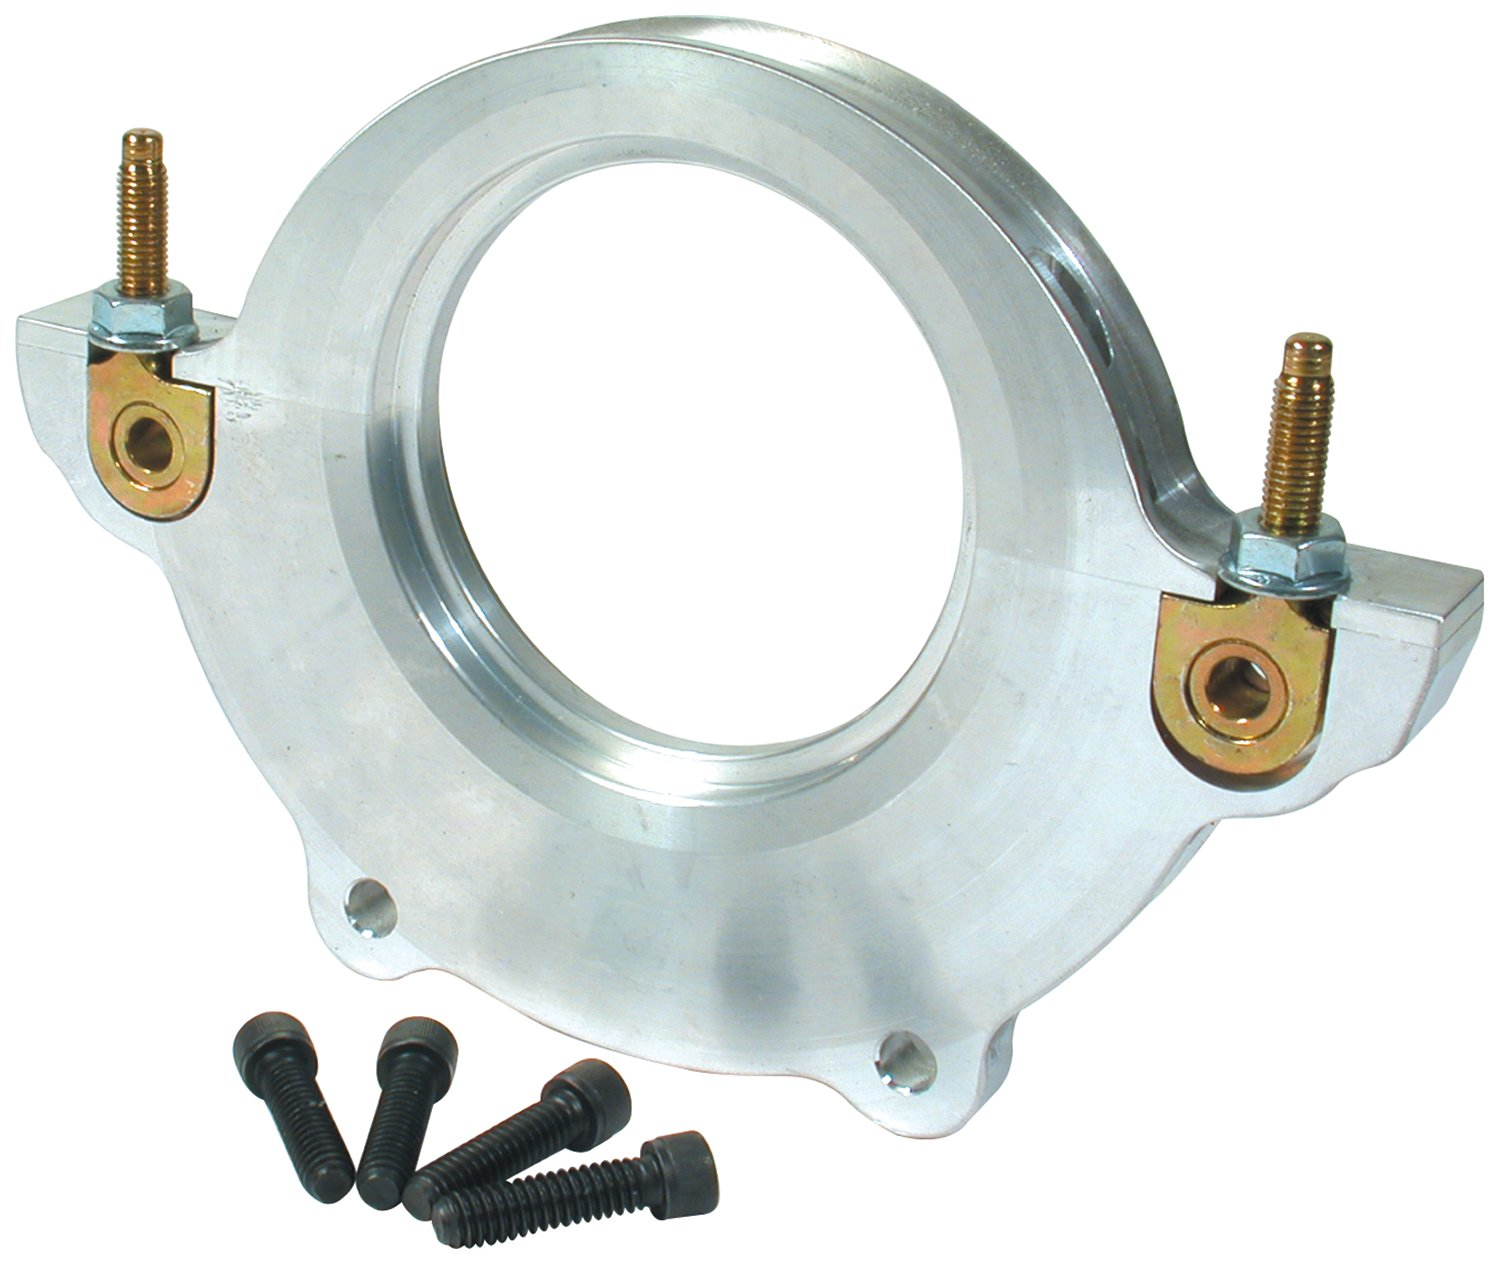 Allstar Performance ALL26125 Rear Main Seal Adapter for Early (Pre-86) Oil Pan by Allstar